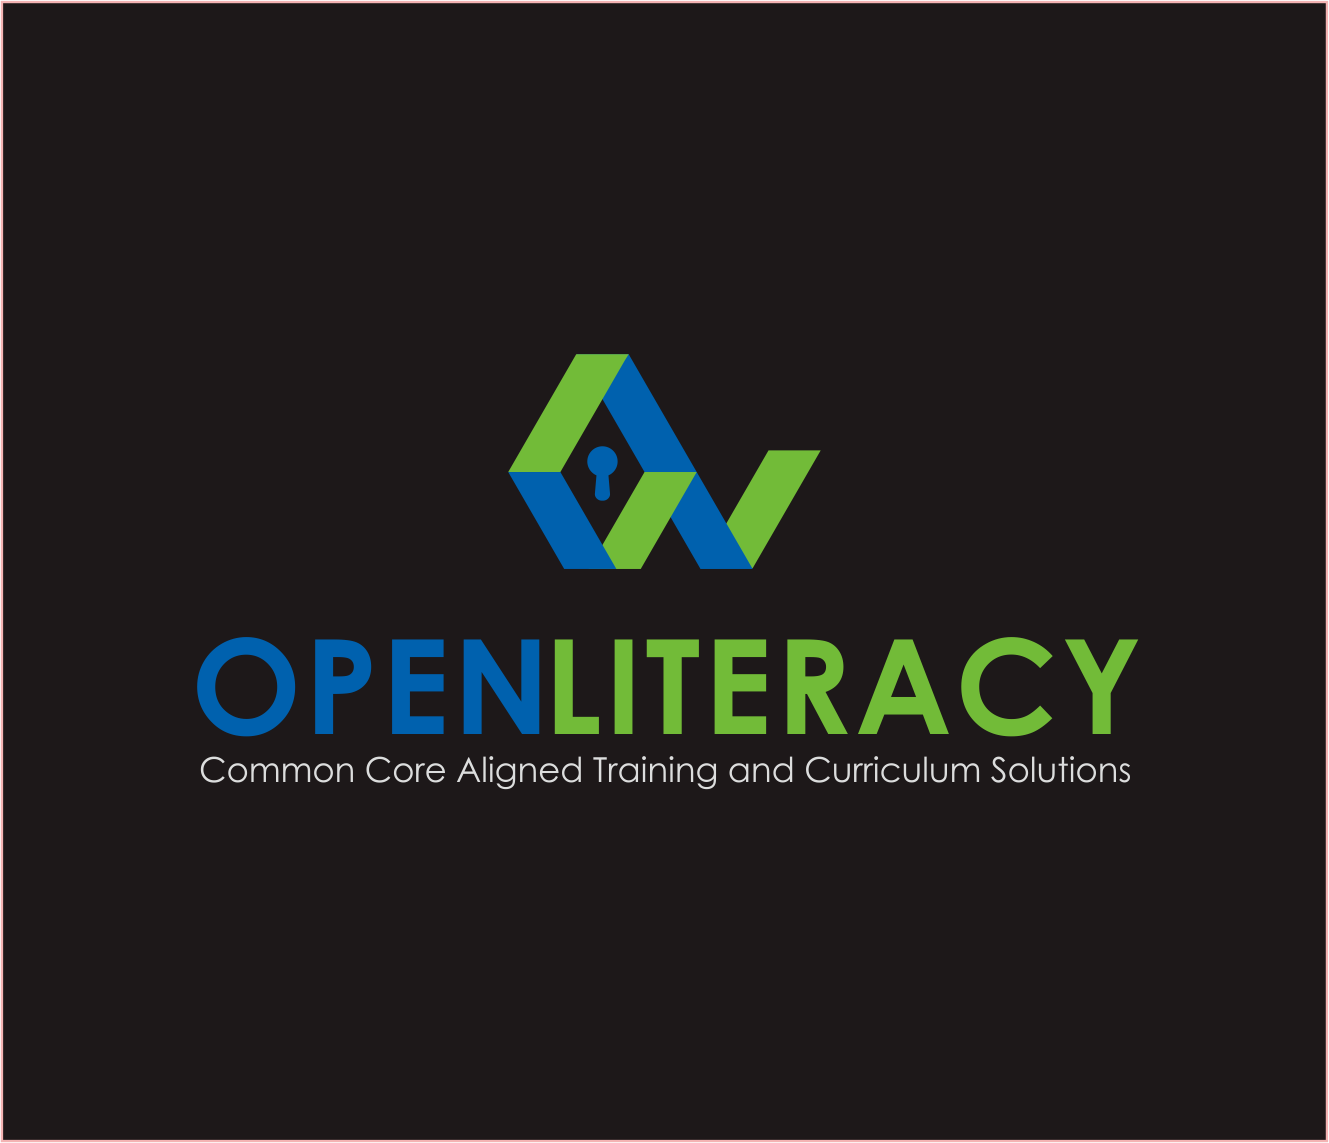 Logo Design by Armada Jamaluddin - Entry No. 135 in the Logo Design Contest Inspiring Logo Design for OpenLiteracy.